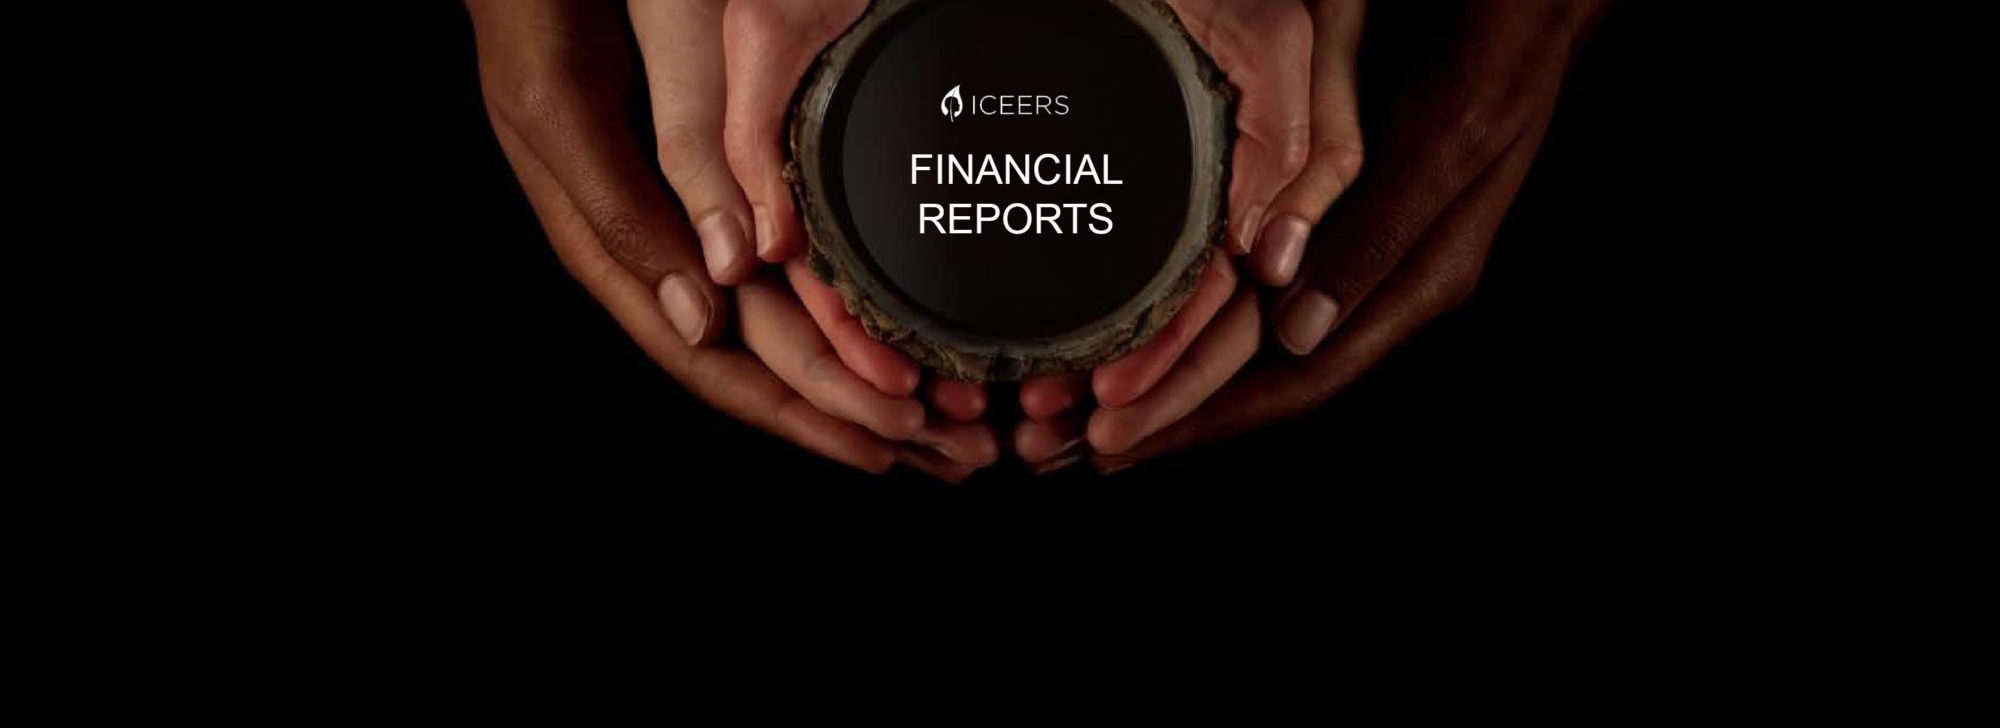 ICEERS Financial Reports